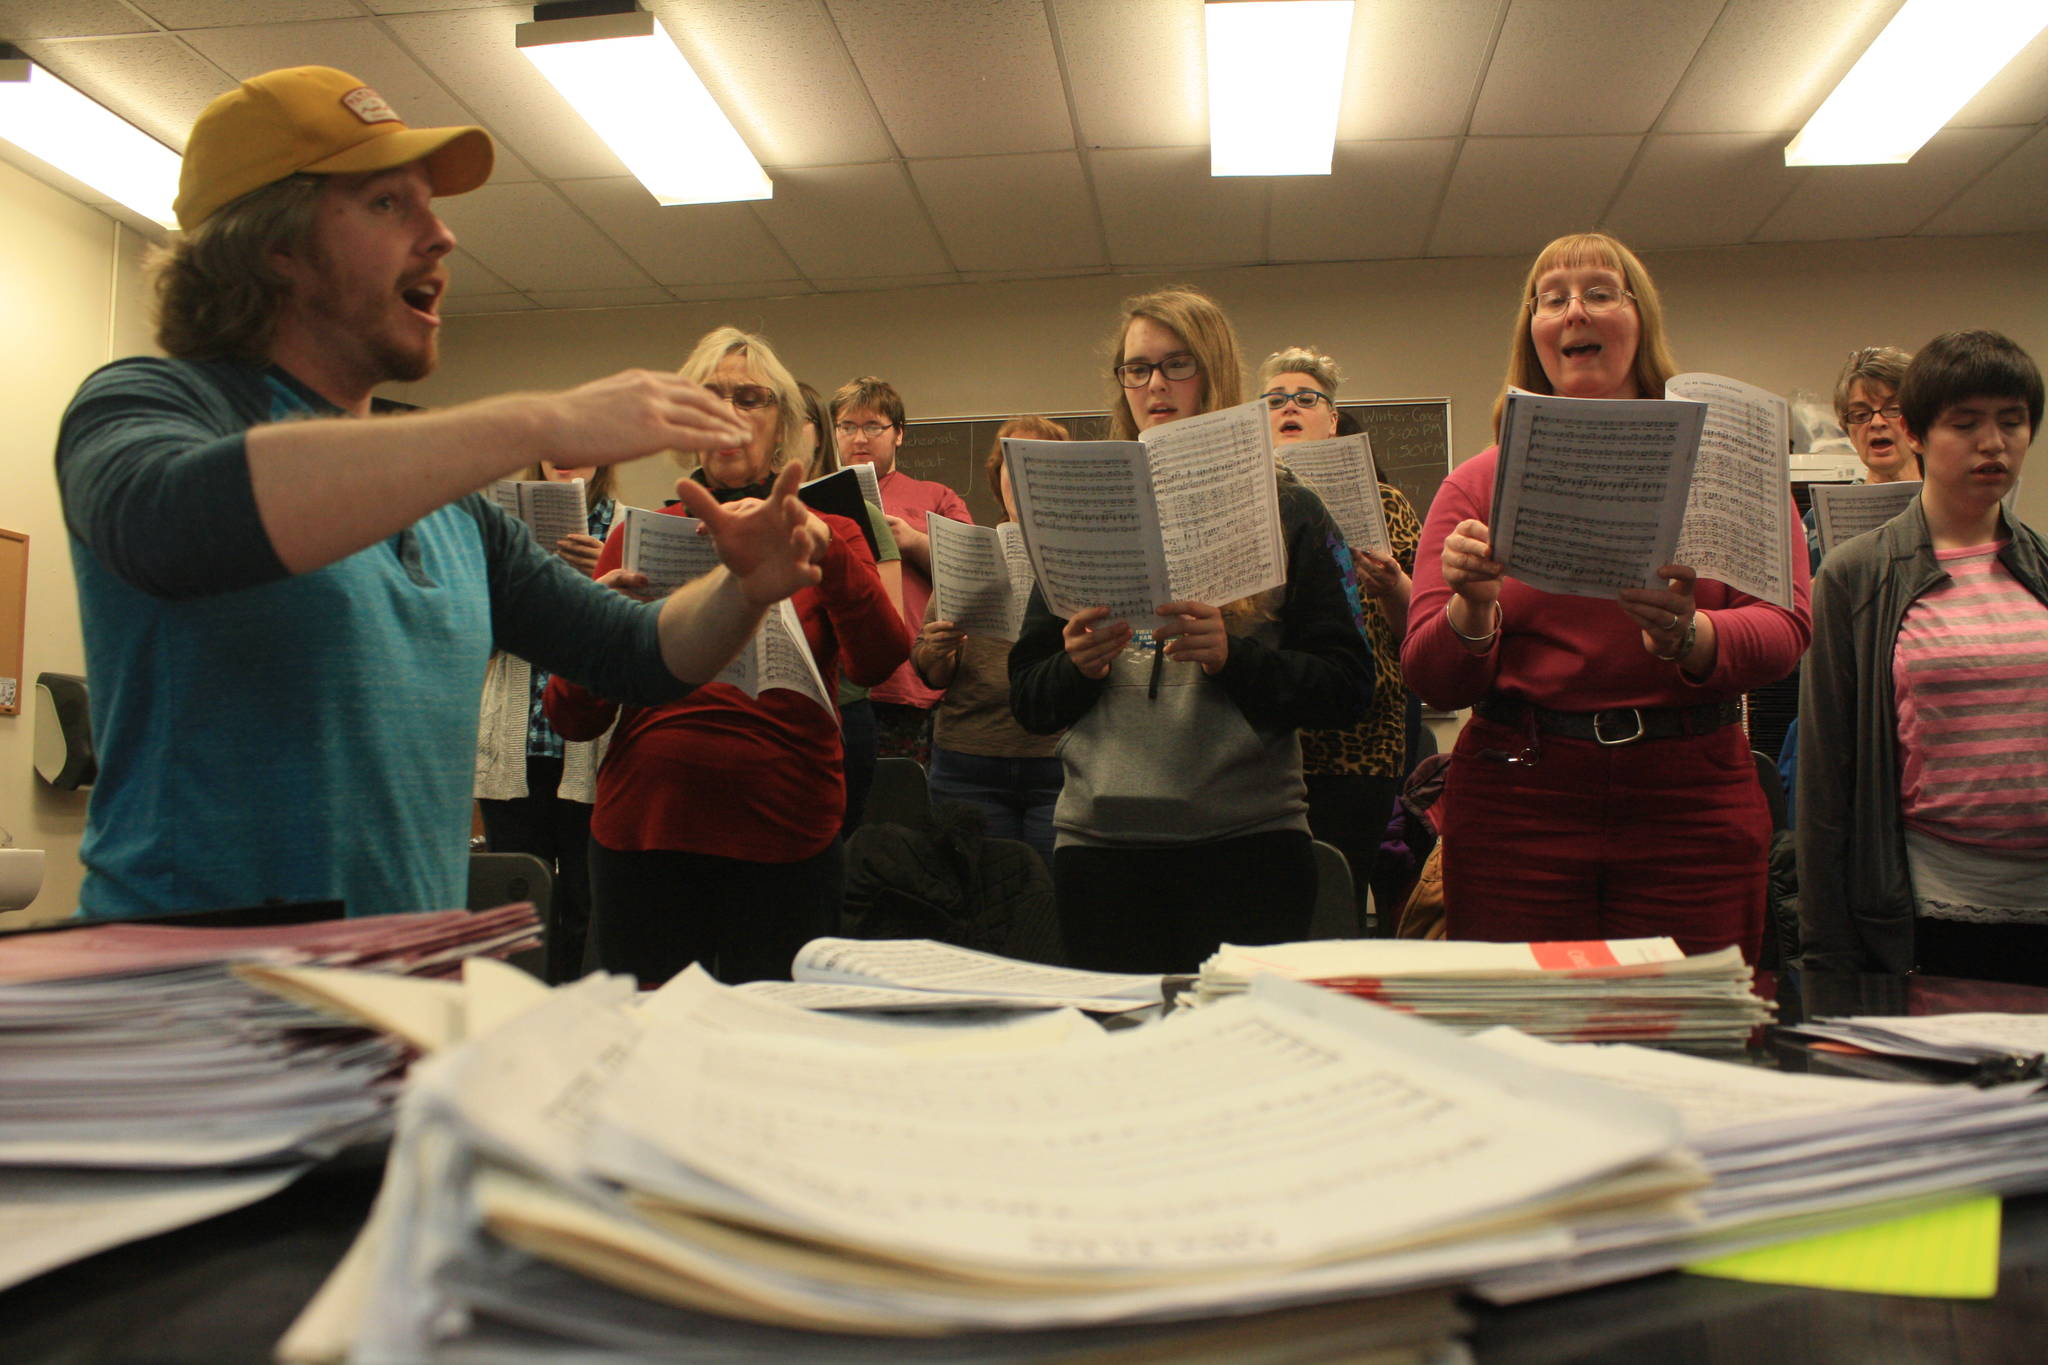 Kenai Central High choir teacher Simon Nissen conducts the Kenai Peninsula Singers during a rehearsal on Dec. 11. The Peninsula Singers and Redoubt Chamber Orchestra will perform together in the 2017 Evening of Christmas on Friday, Dec. 15. (Photo by Erin Thompson/Peninsula Clarion)